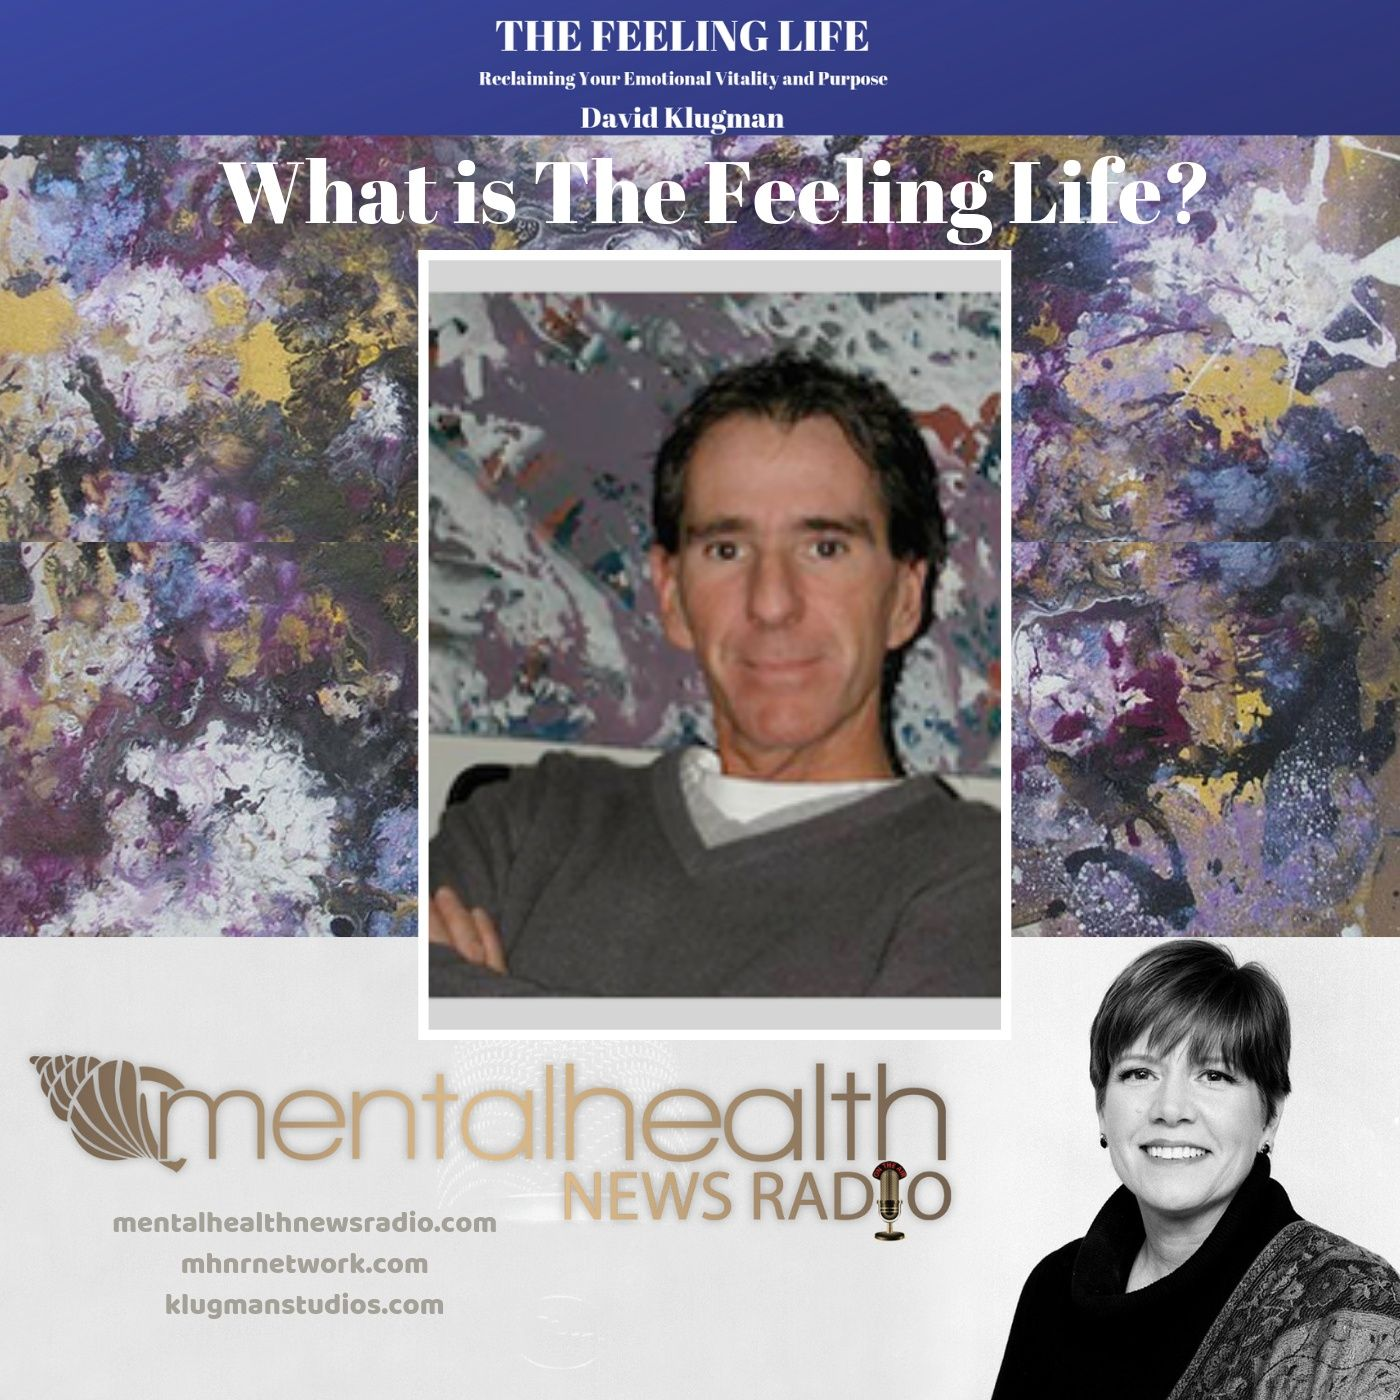 Mental Health News Radio - An Introduction to The Feeling Life